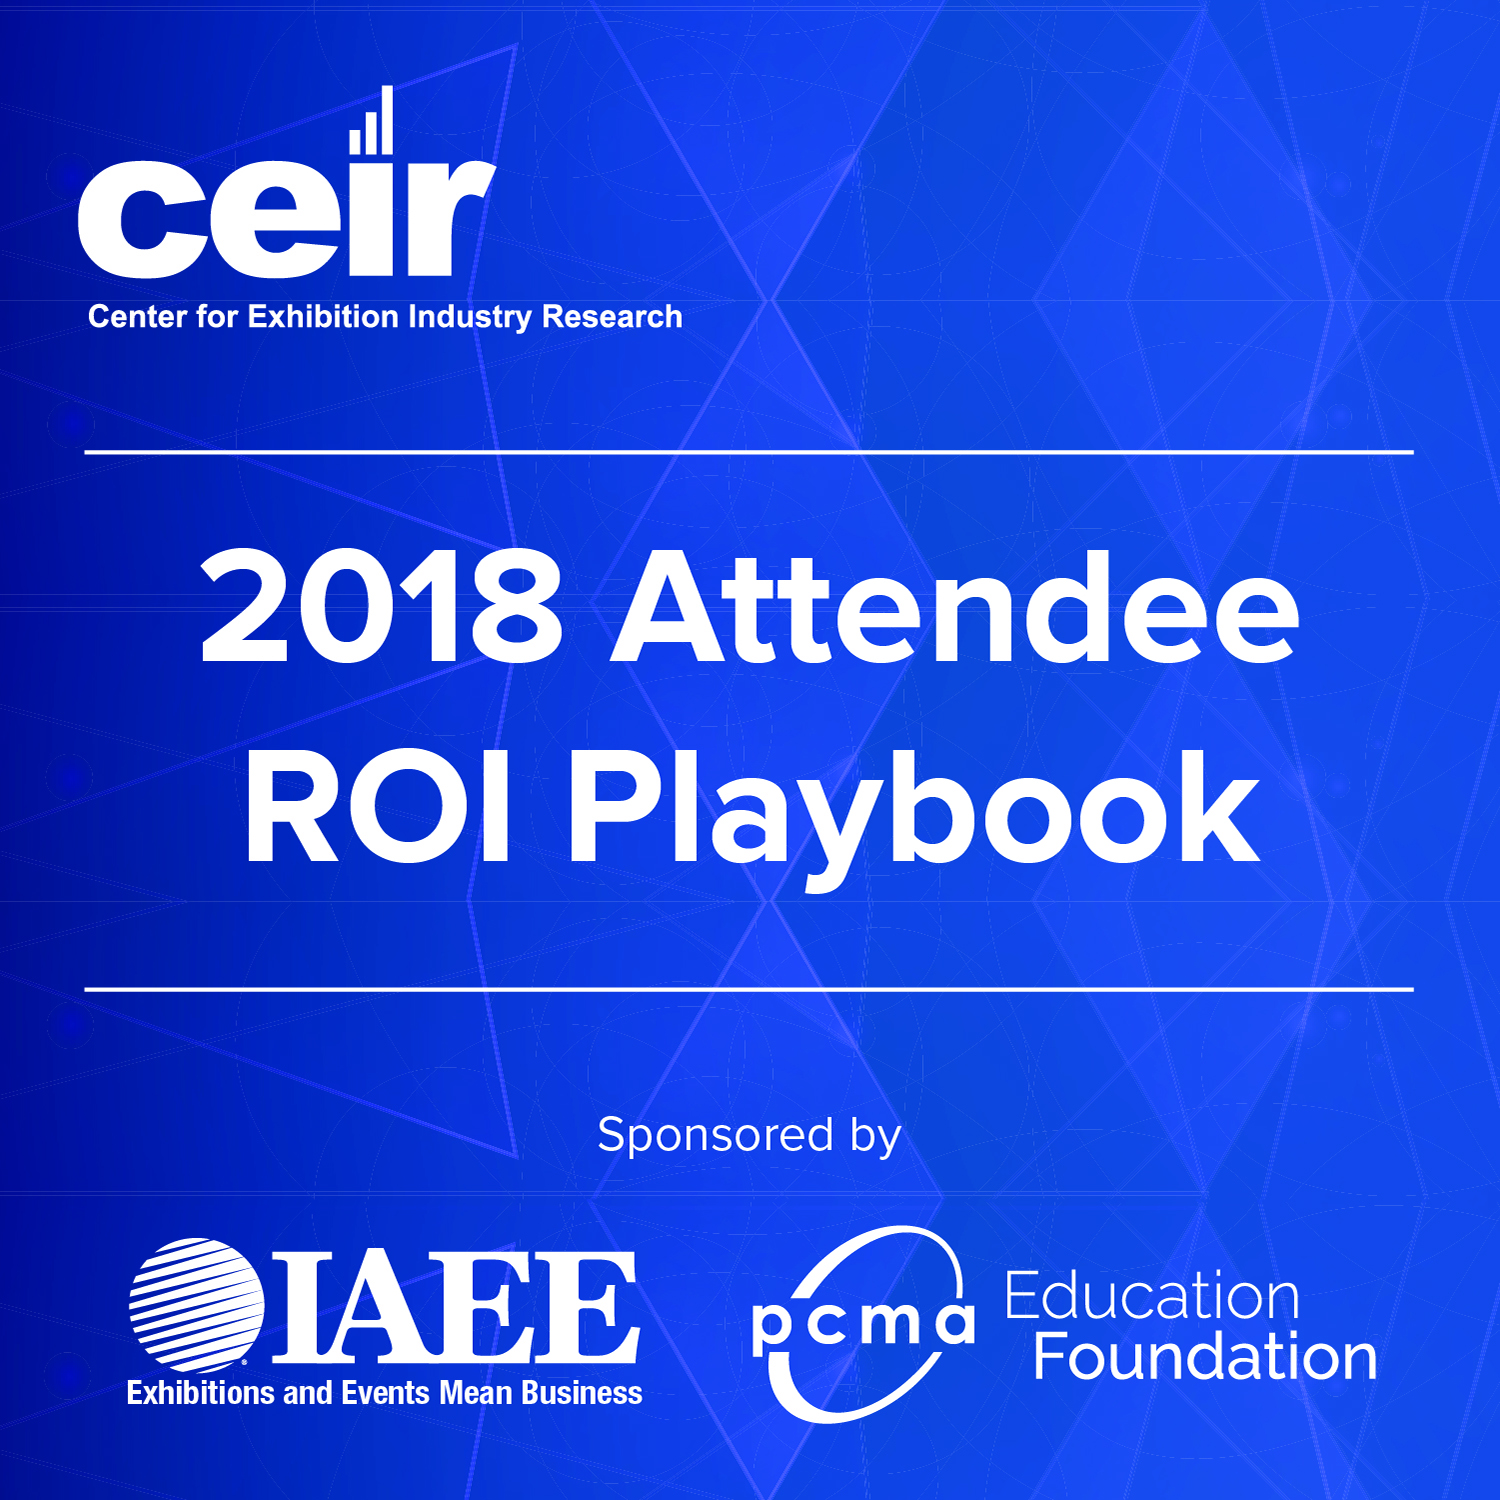 2018 Attendee ROI Playbook: Part 7